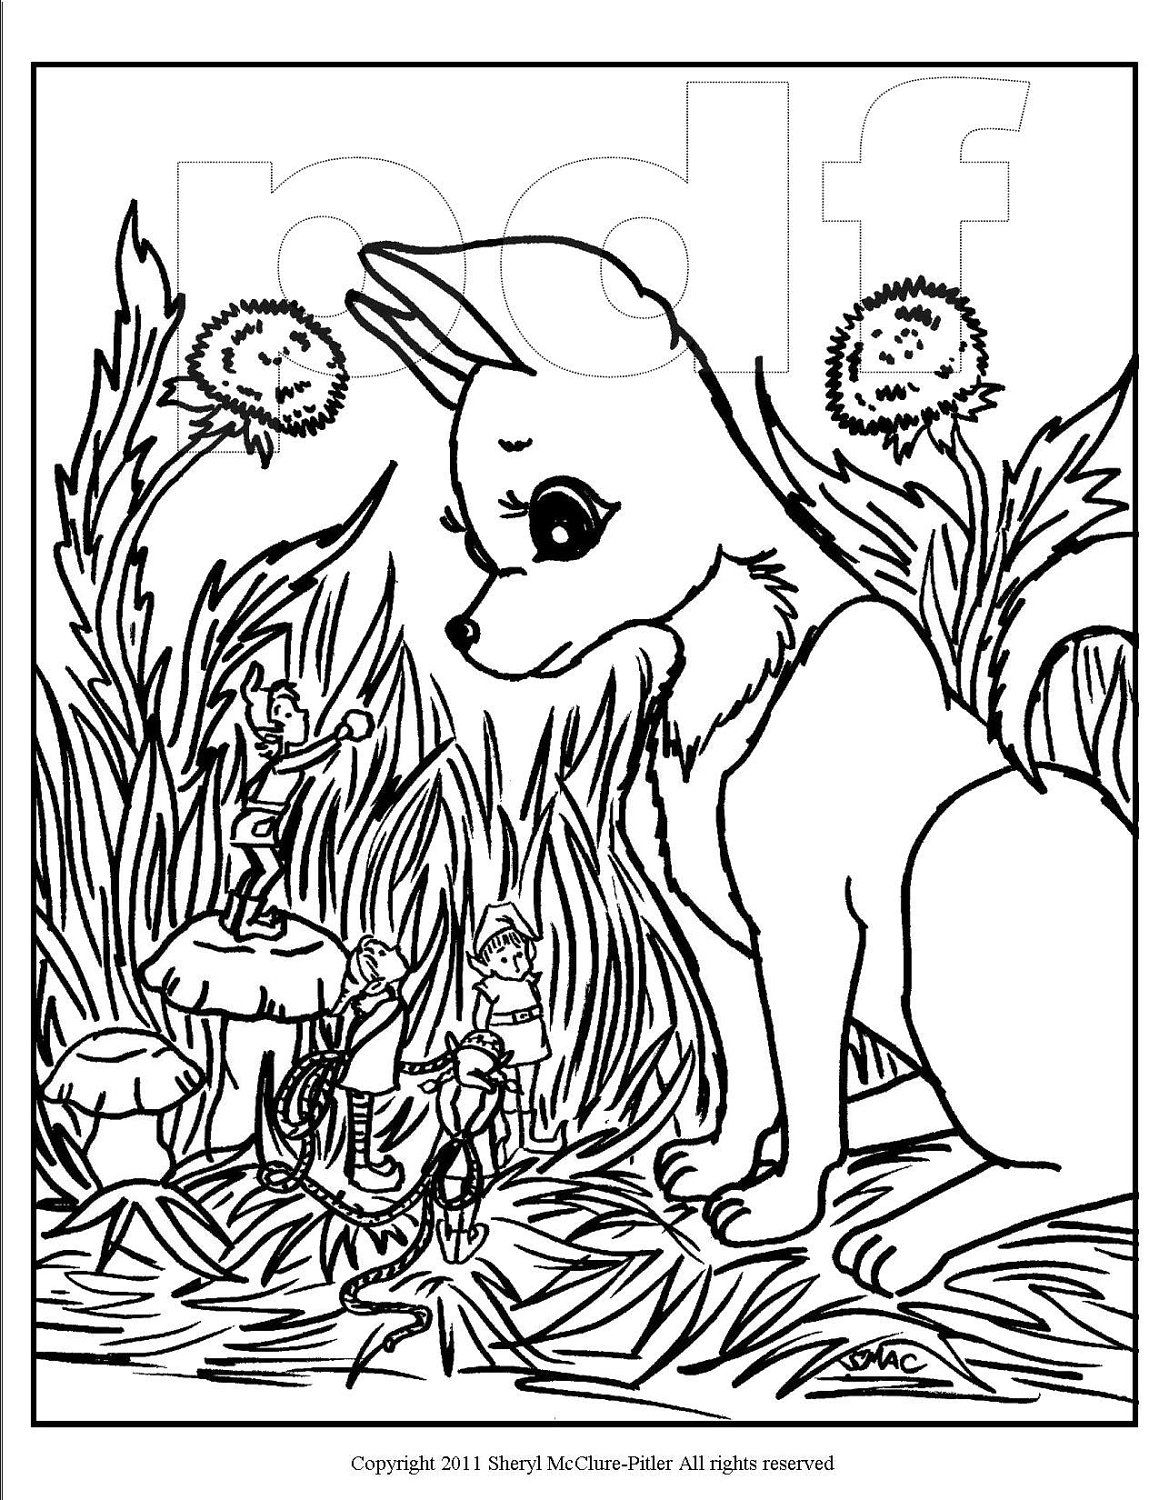 Beverly Hills Chihuahua Coloring Pages | Coloring Pages Chihuahua ...